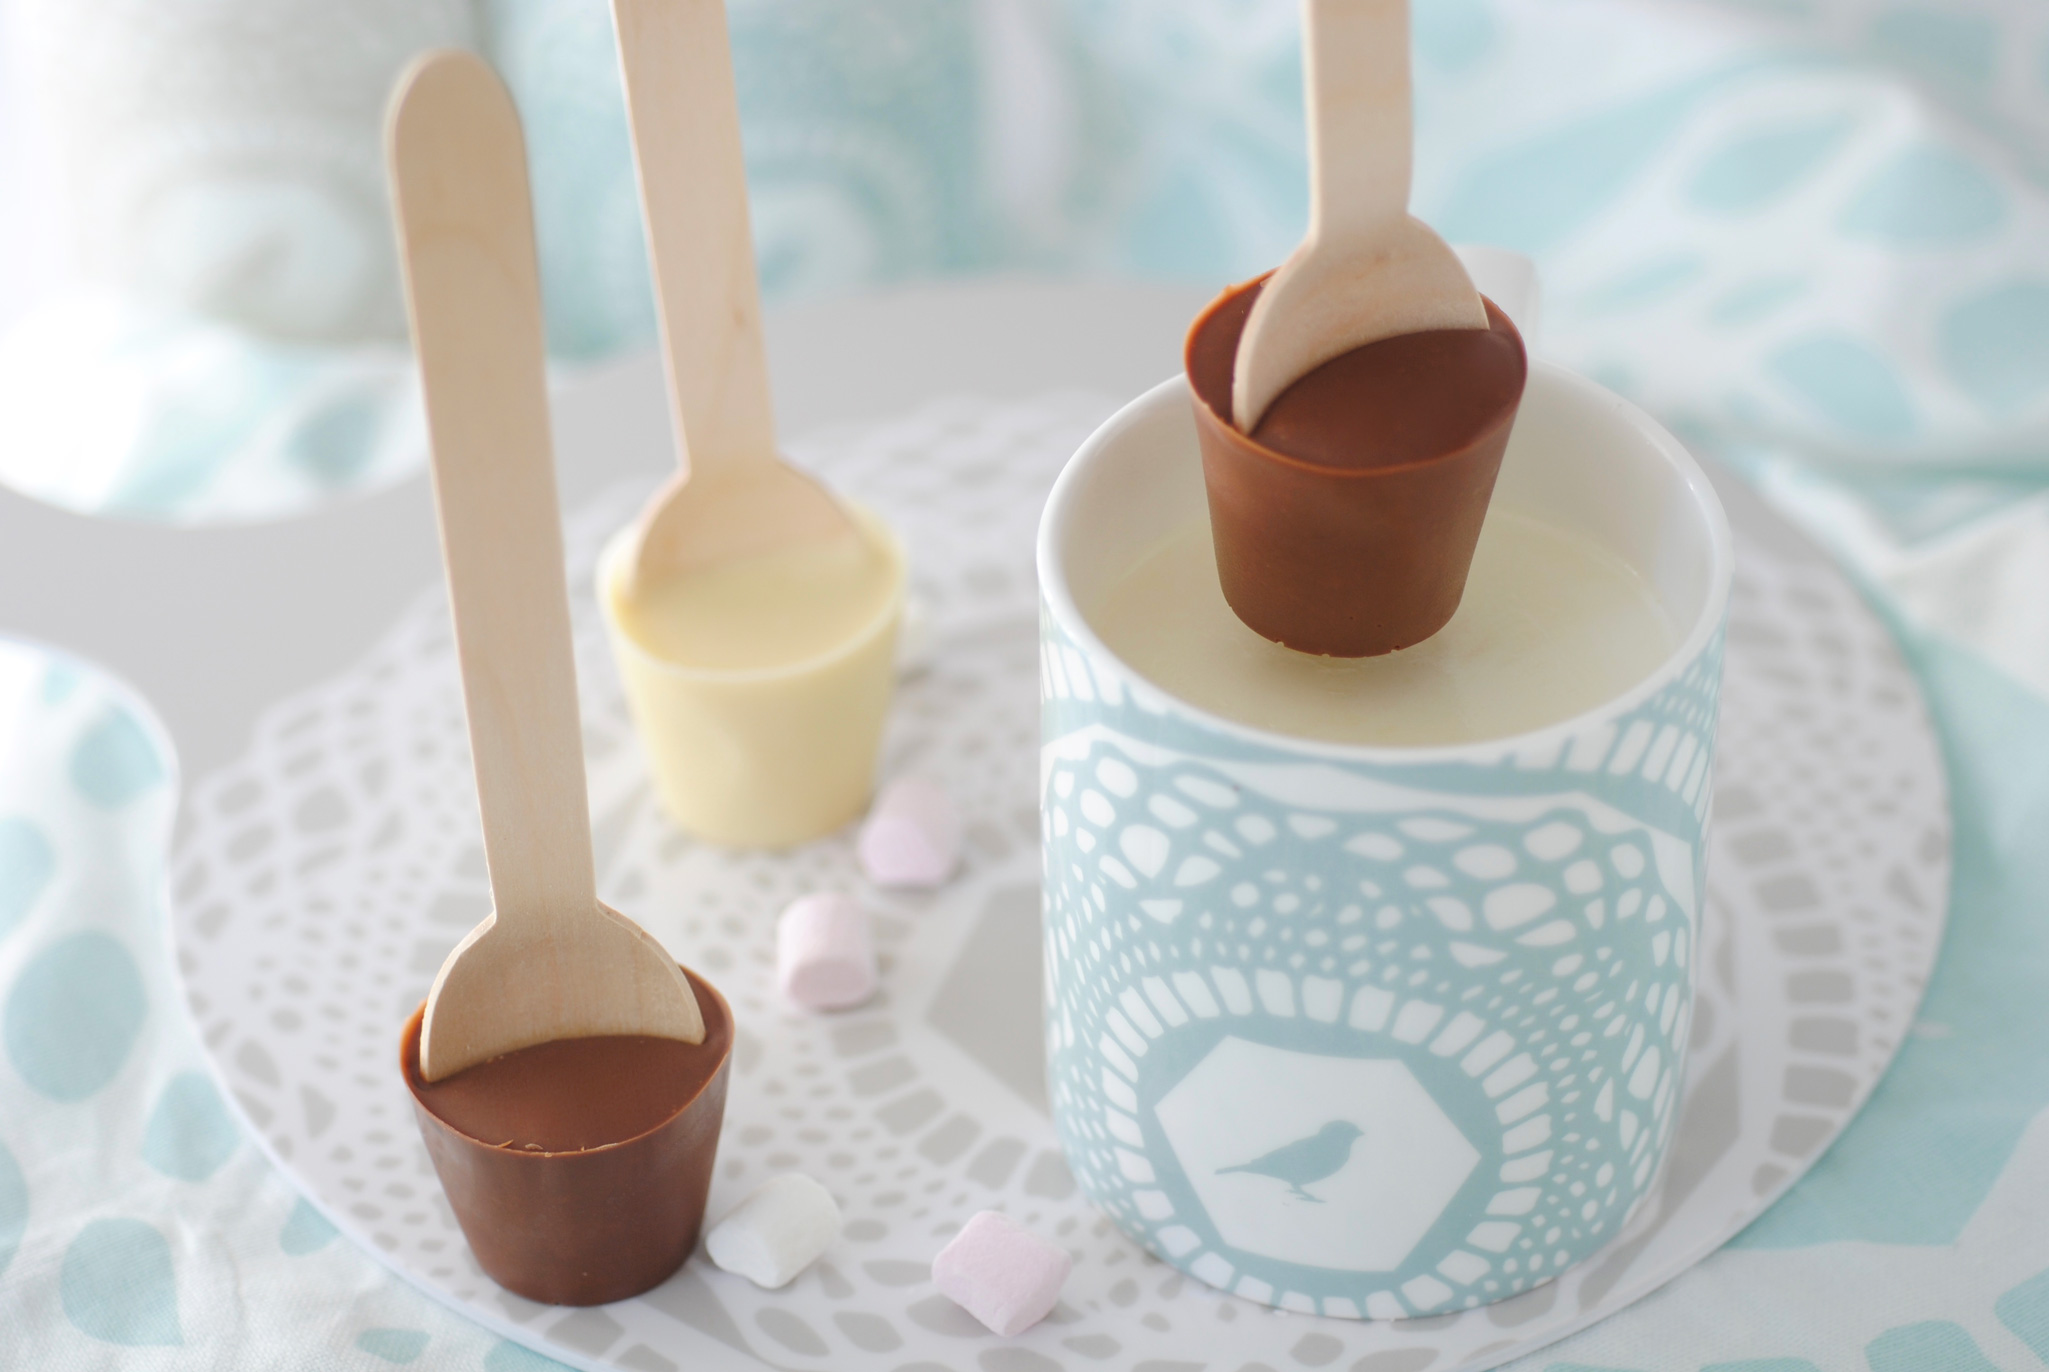 DIY hot chocolate spoon ready to be dunked